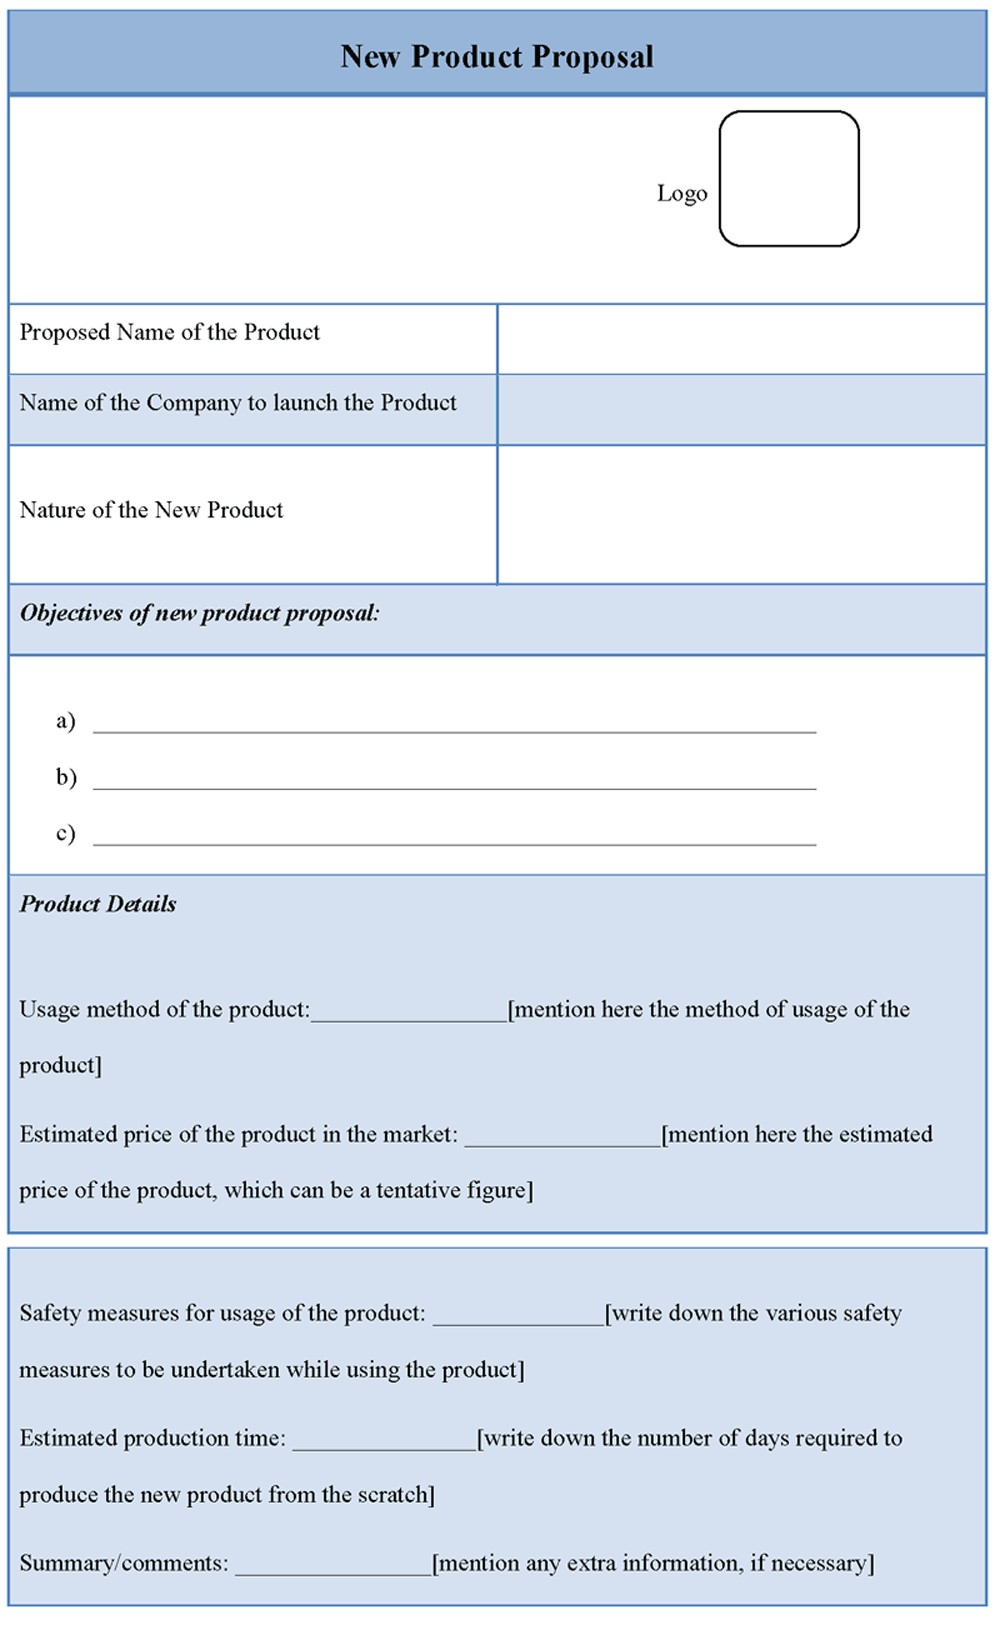 new product proposal template